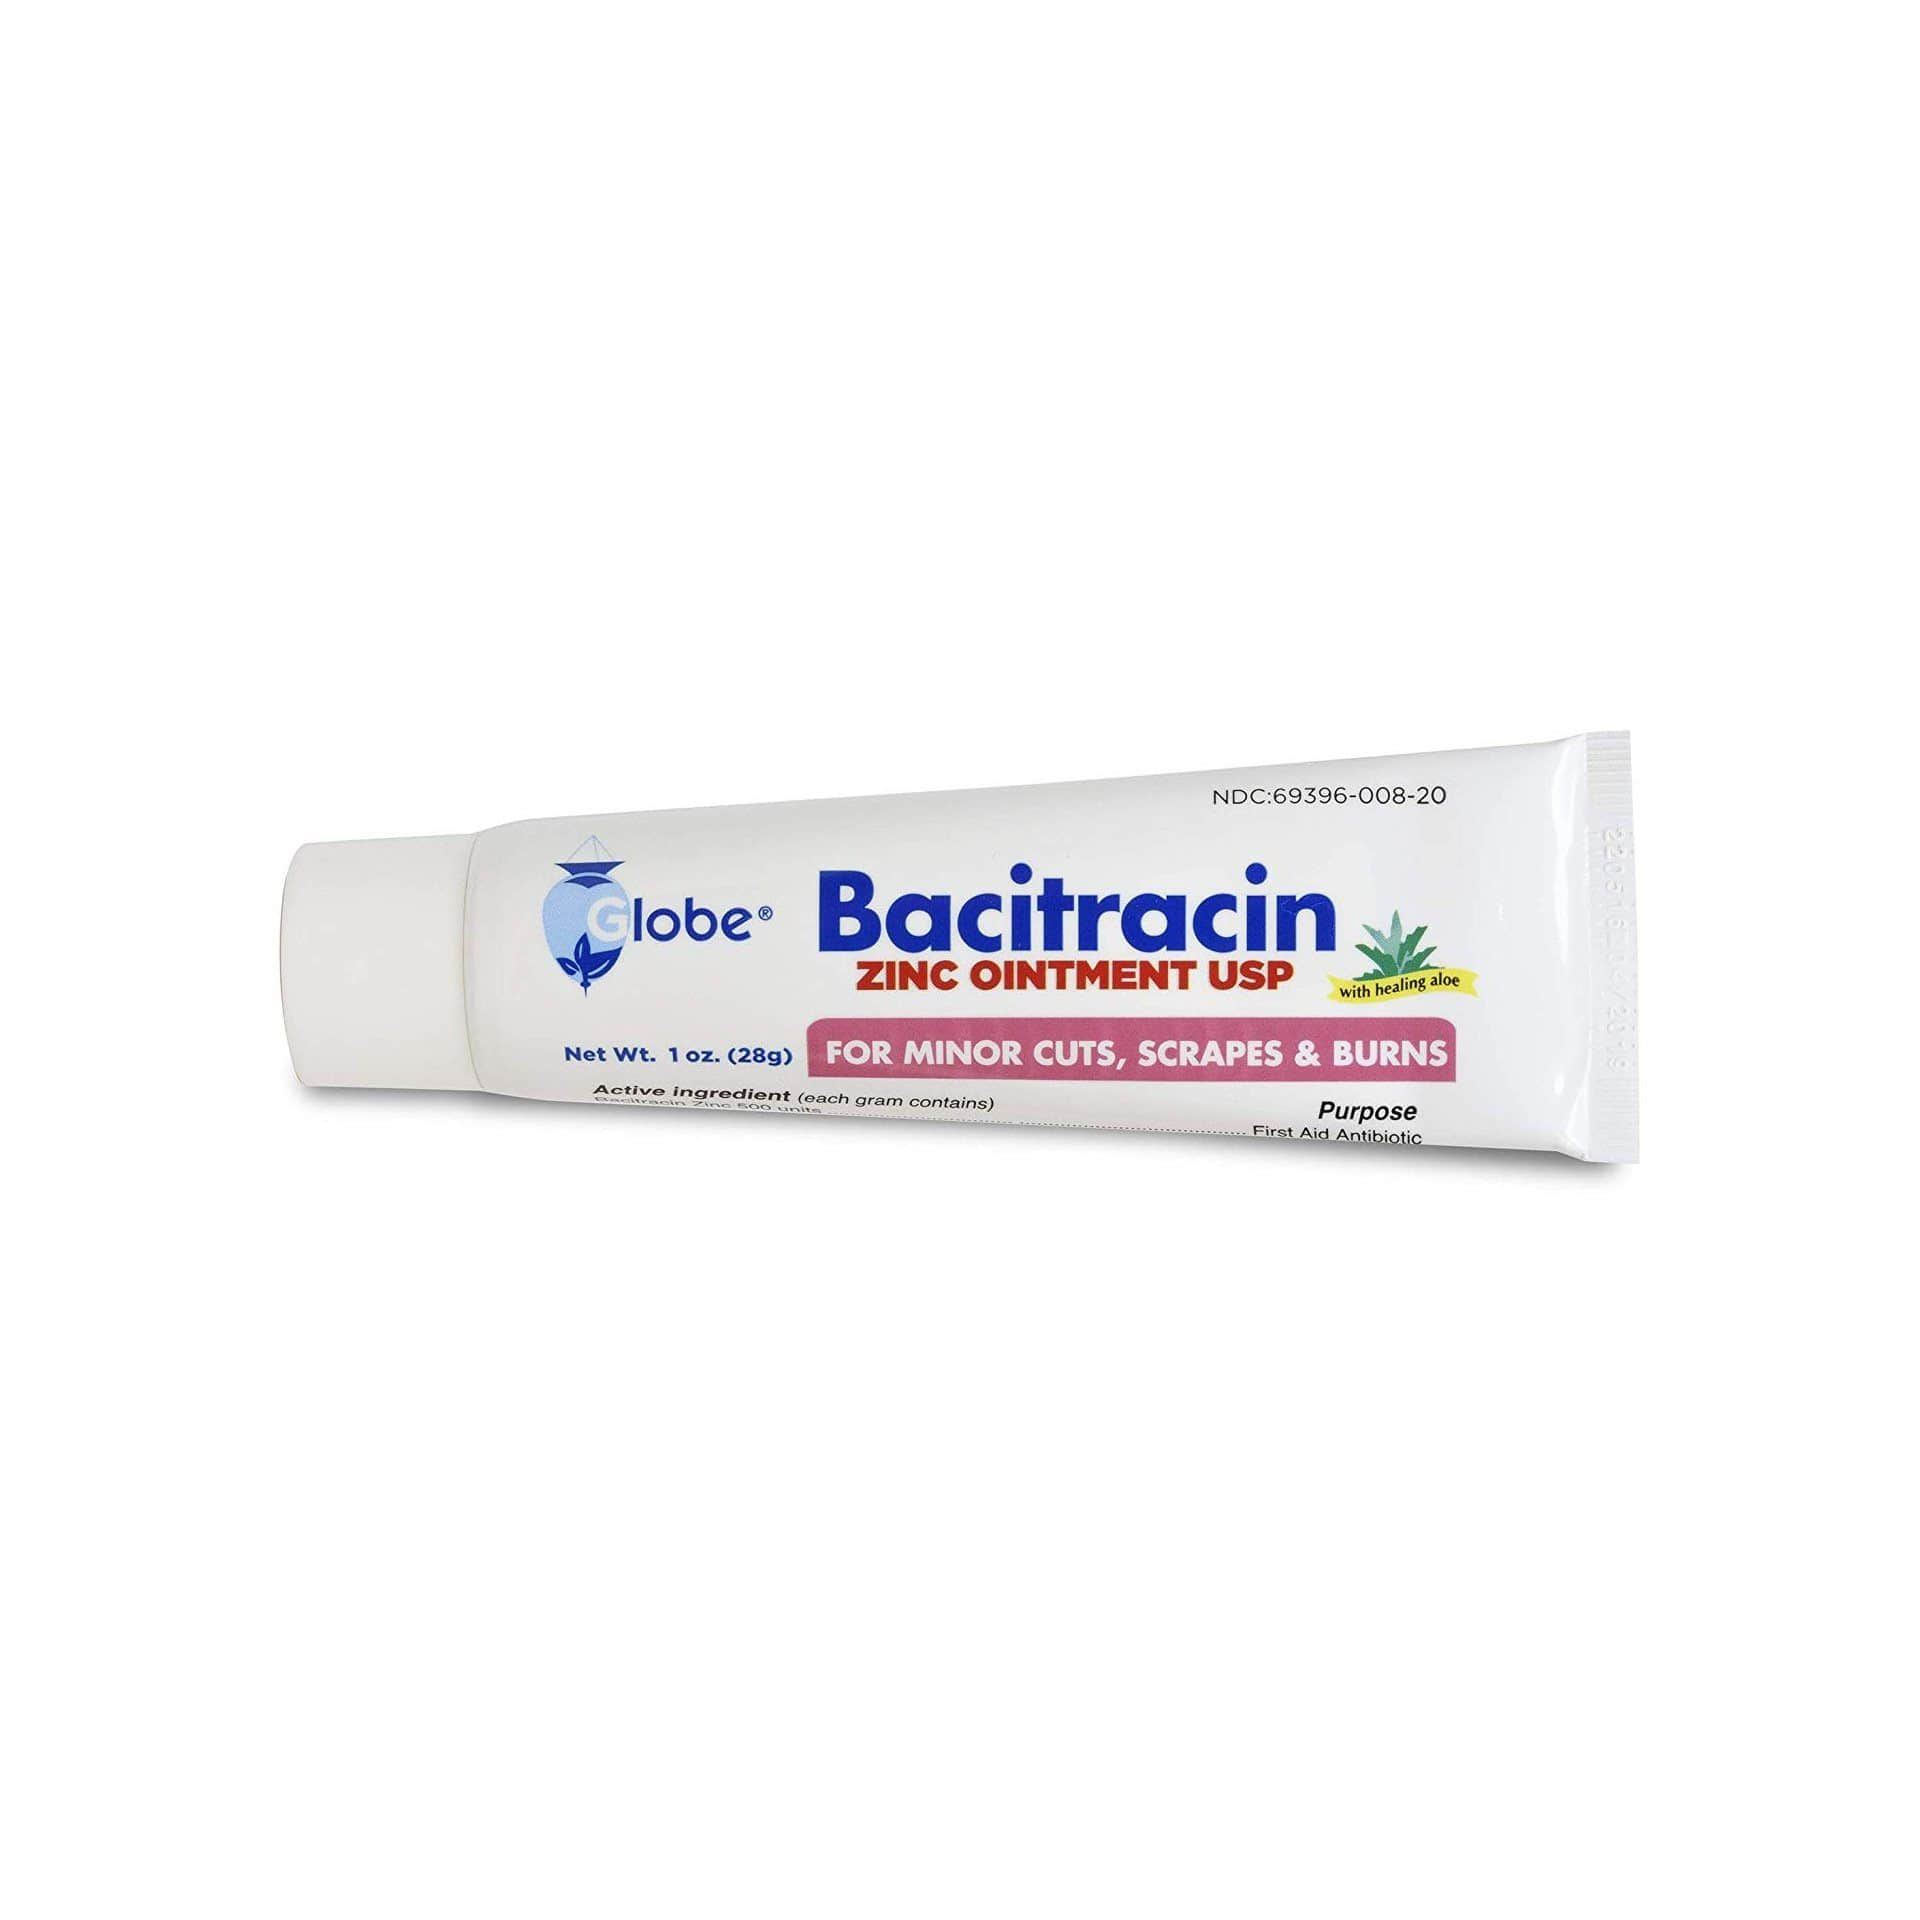 Bacitracin - First Aid Antibiotic Ointment